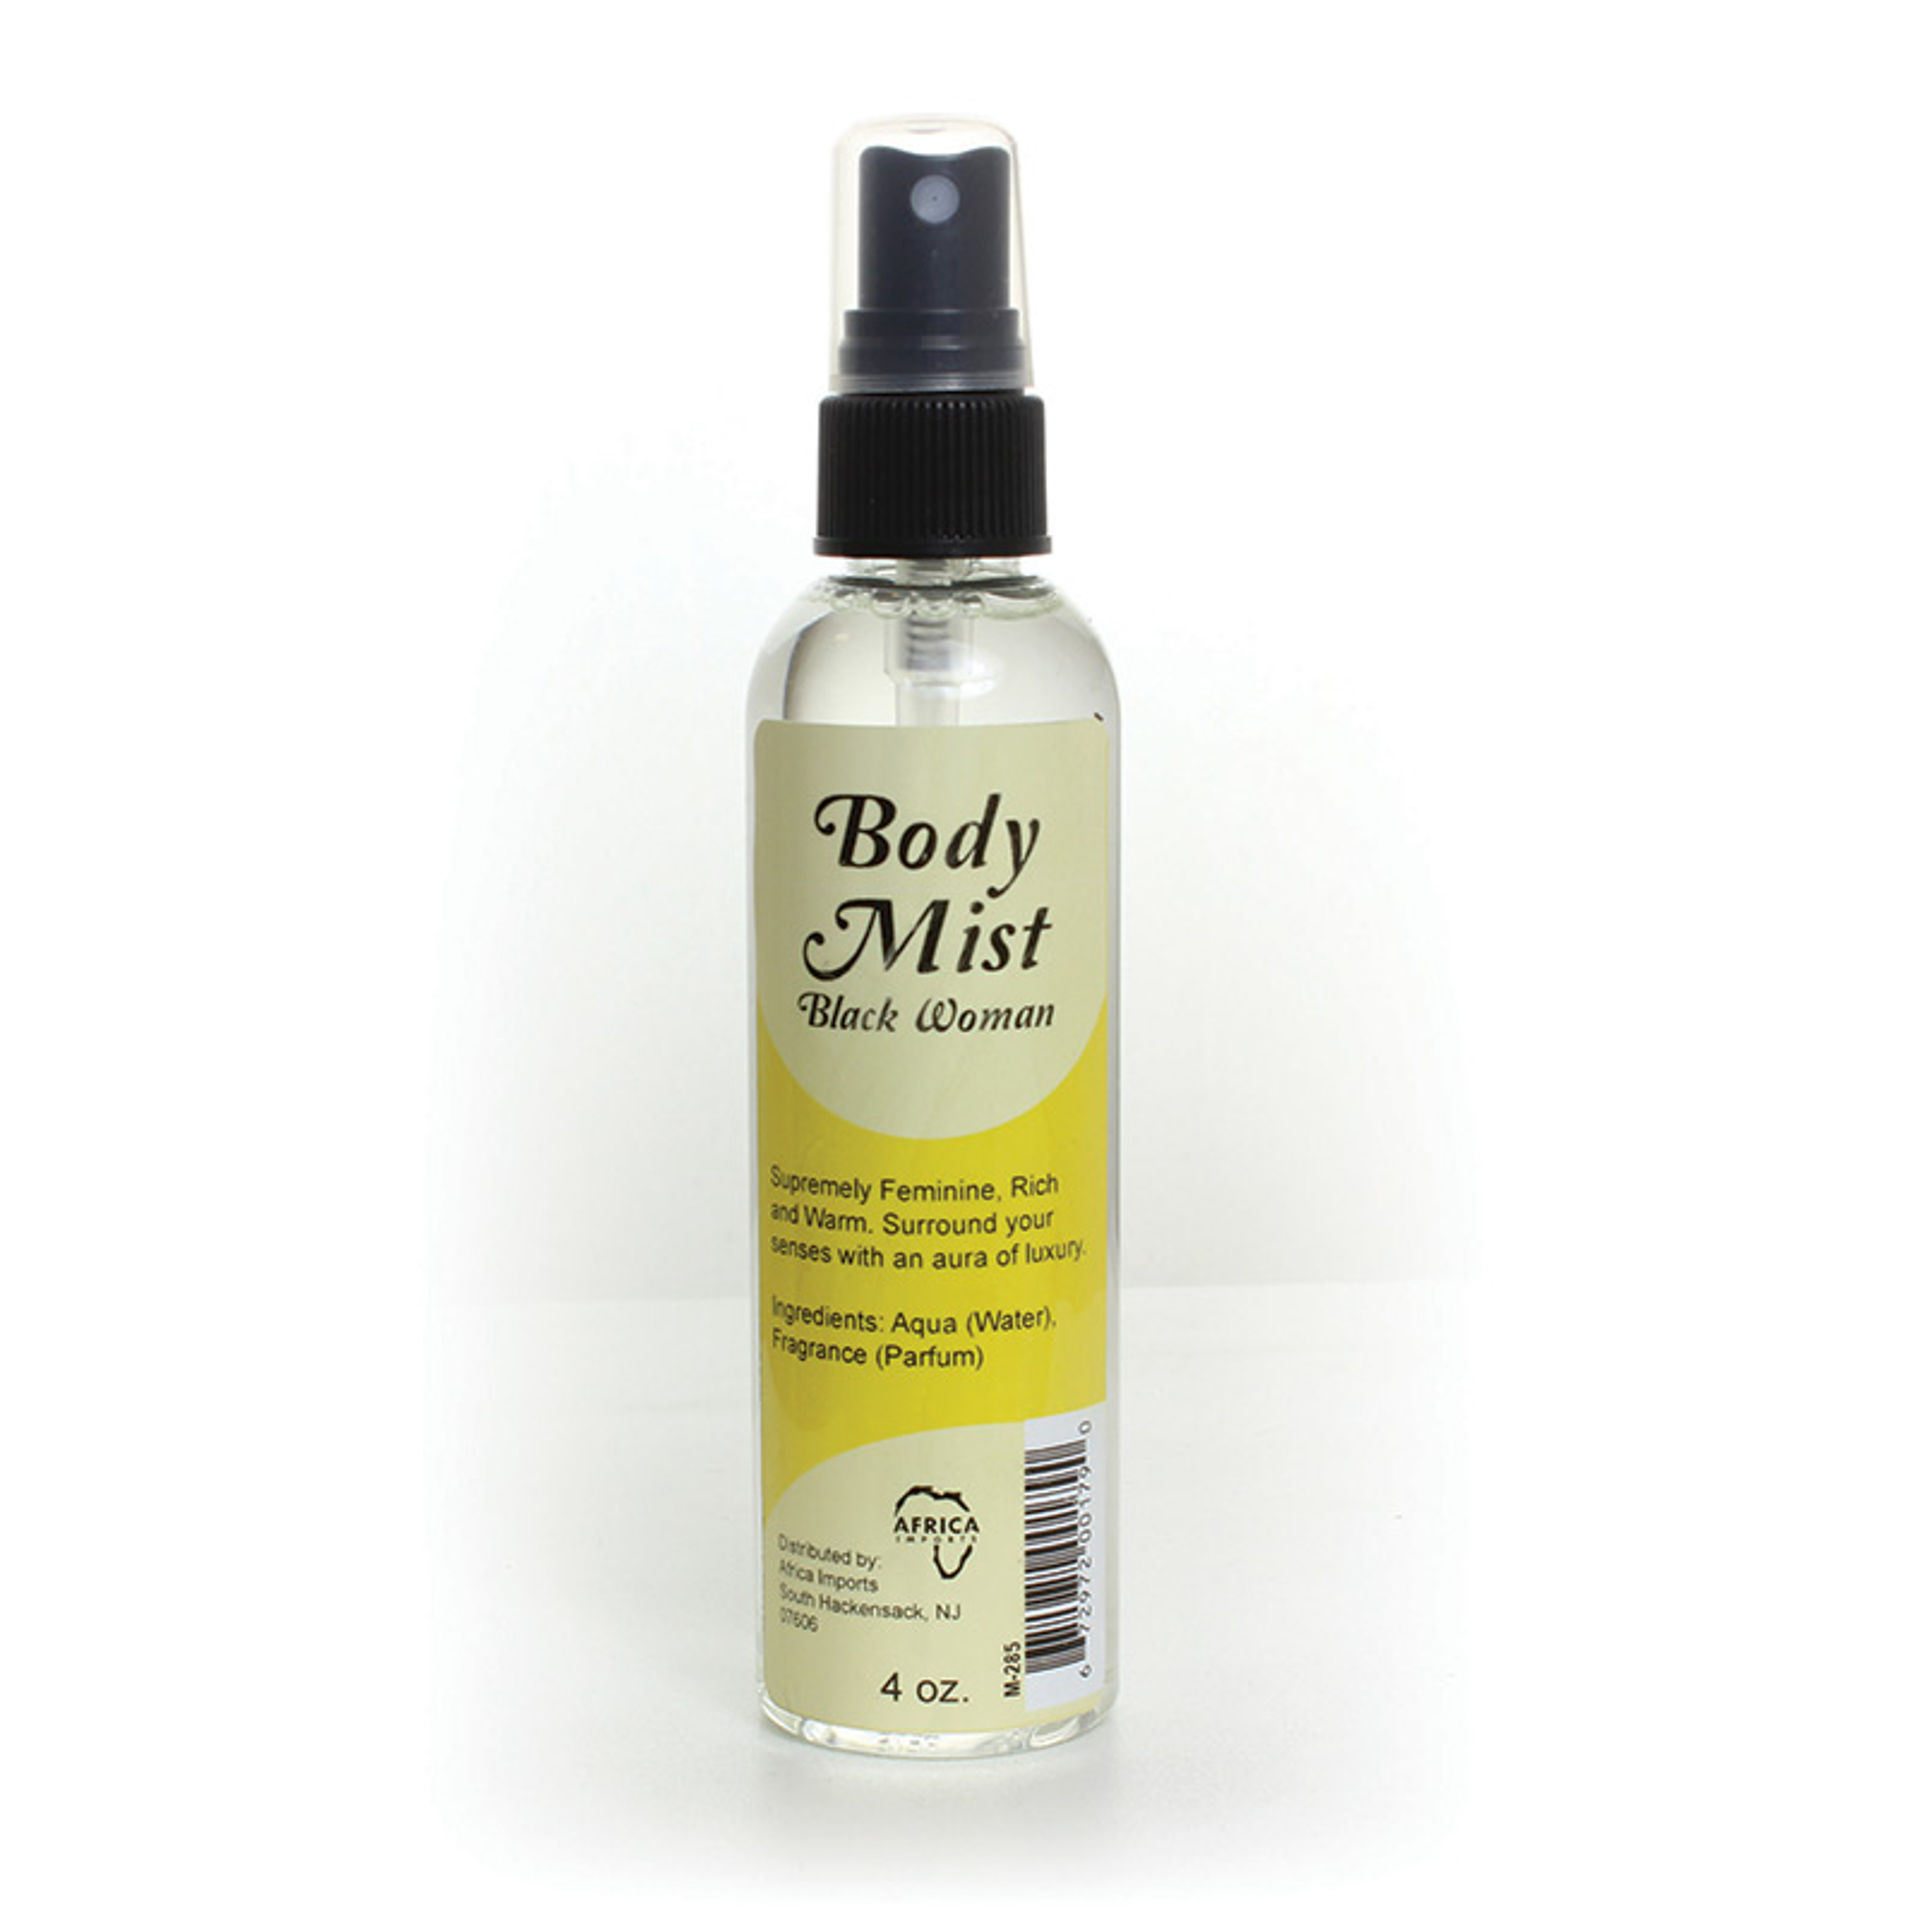 Picture of Black Woman Body Mist - 4 oz.